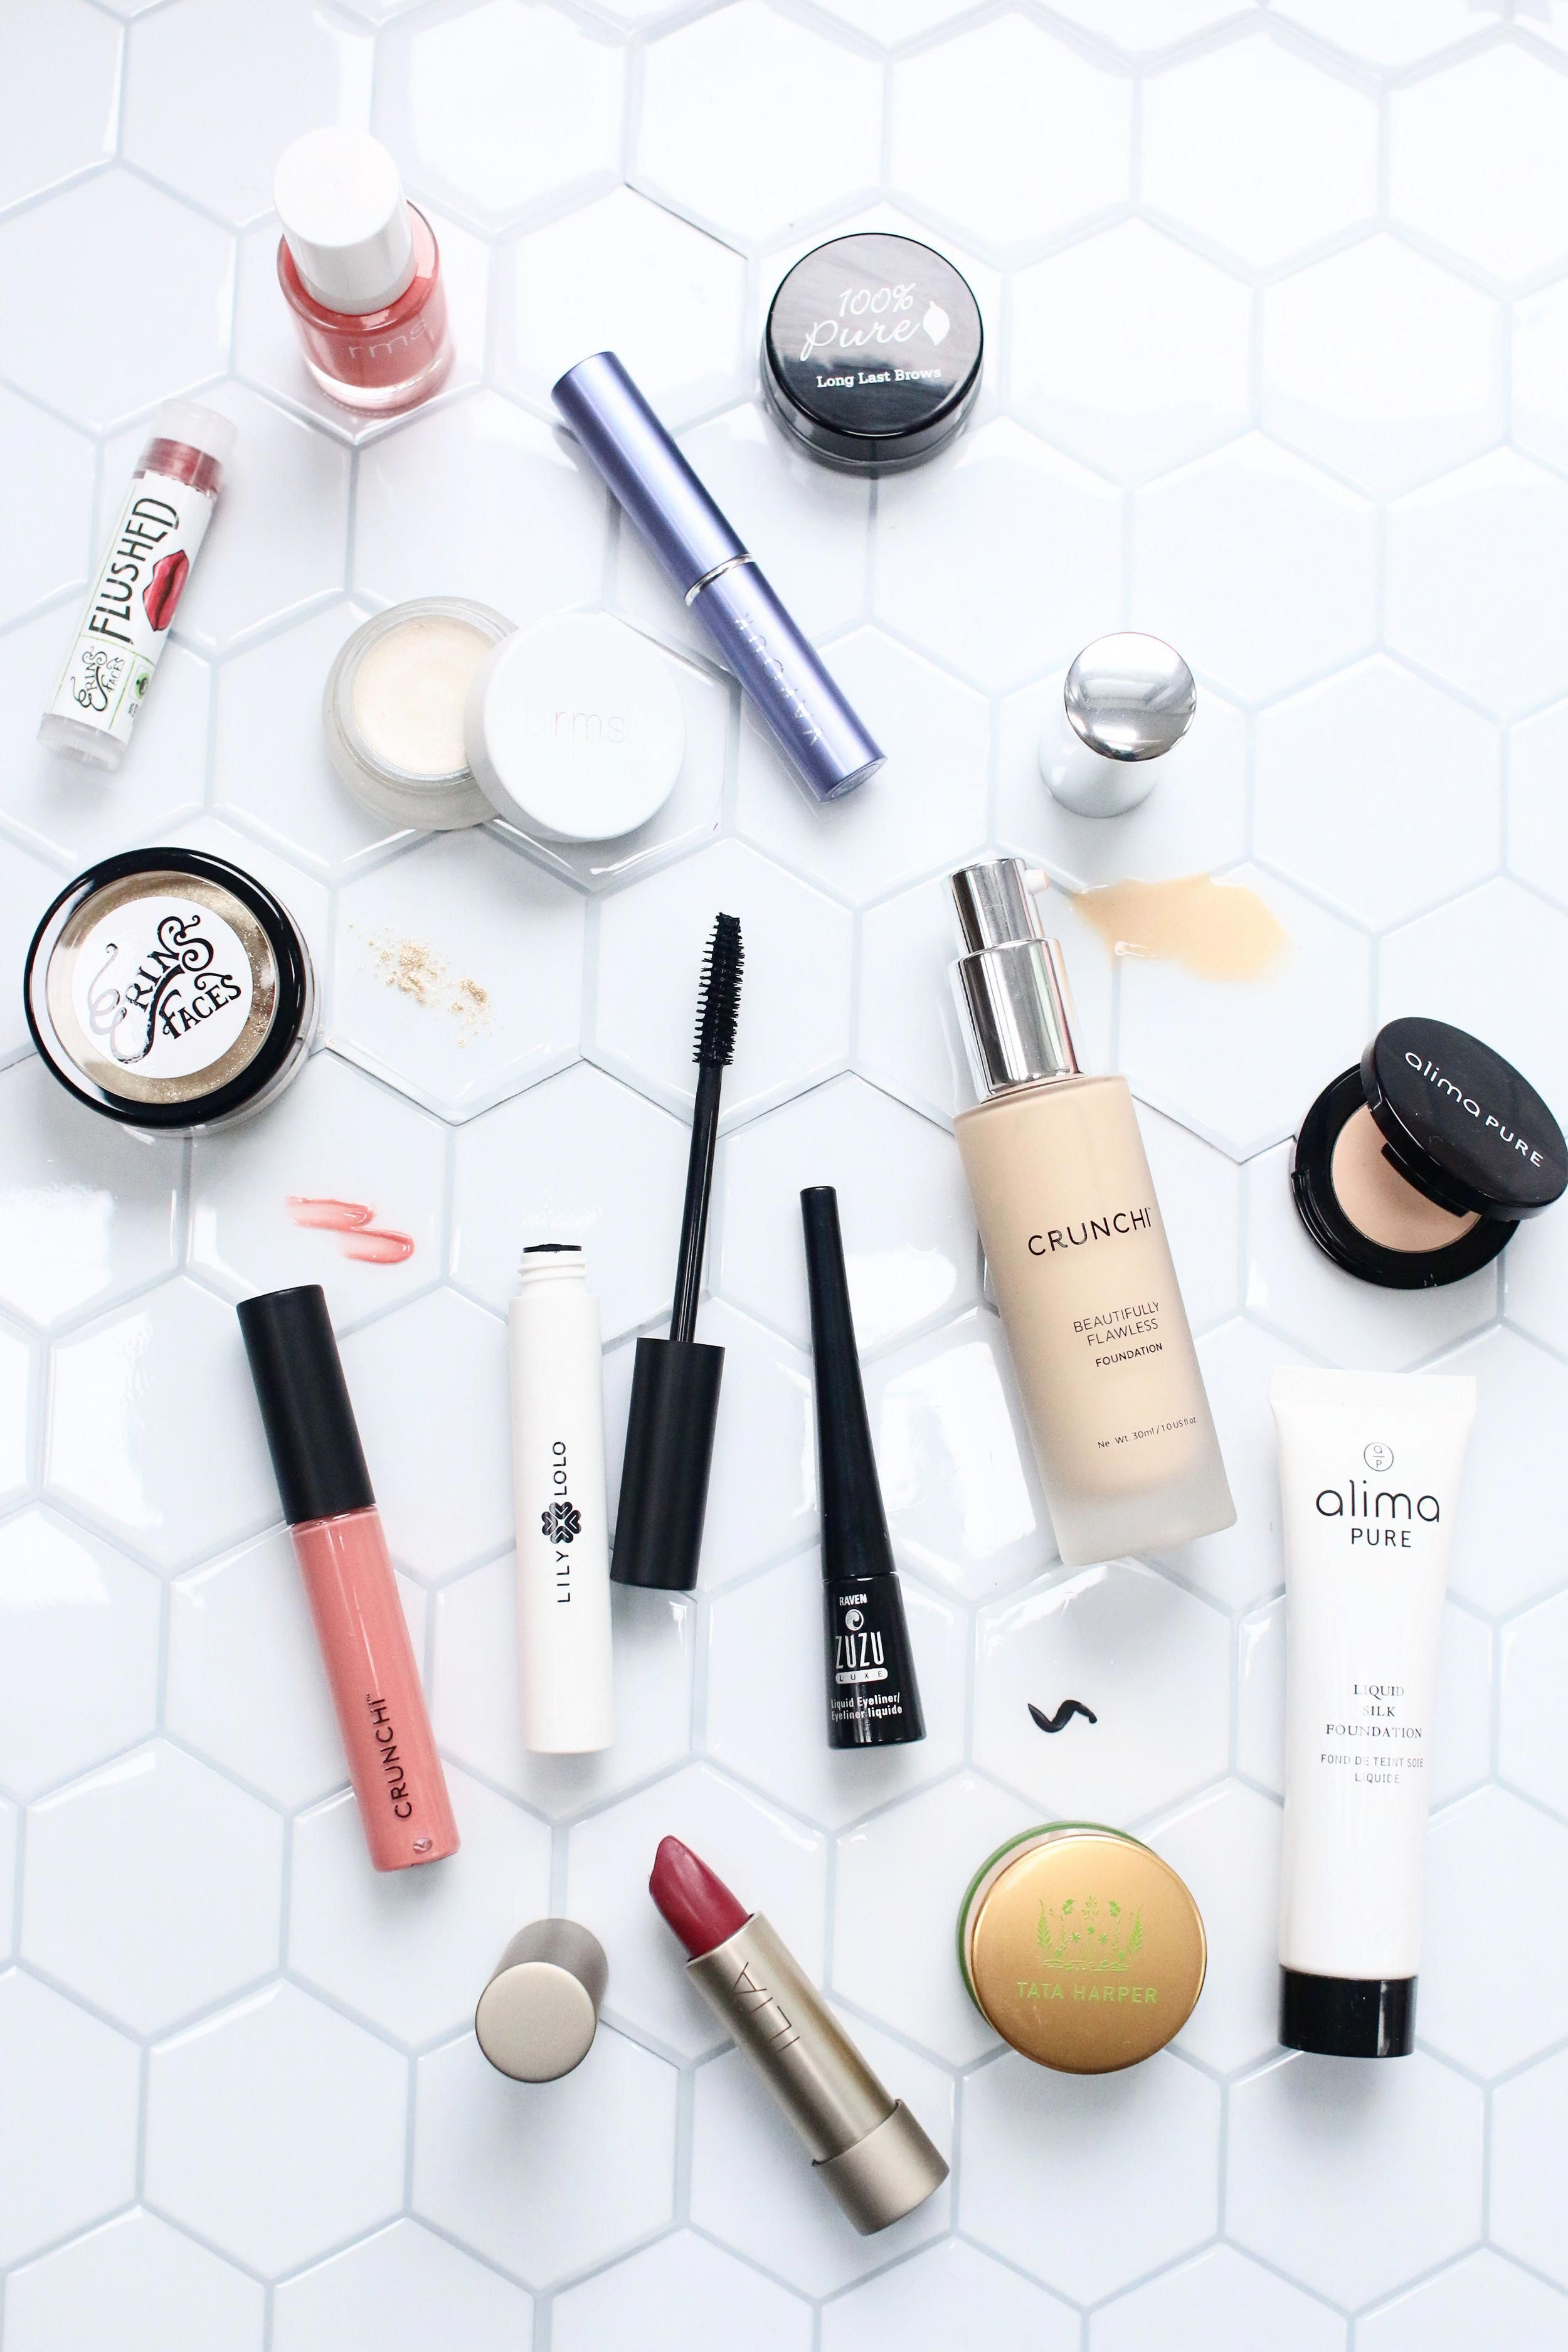 10 Nontoxic Makeup Brands To Try Non toxic makeup brands